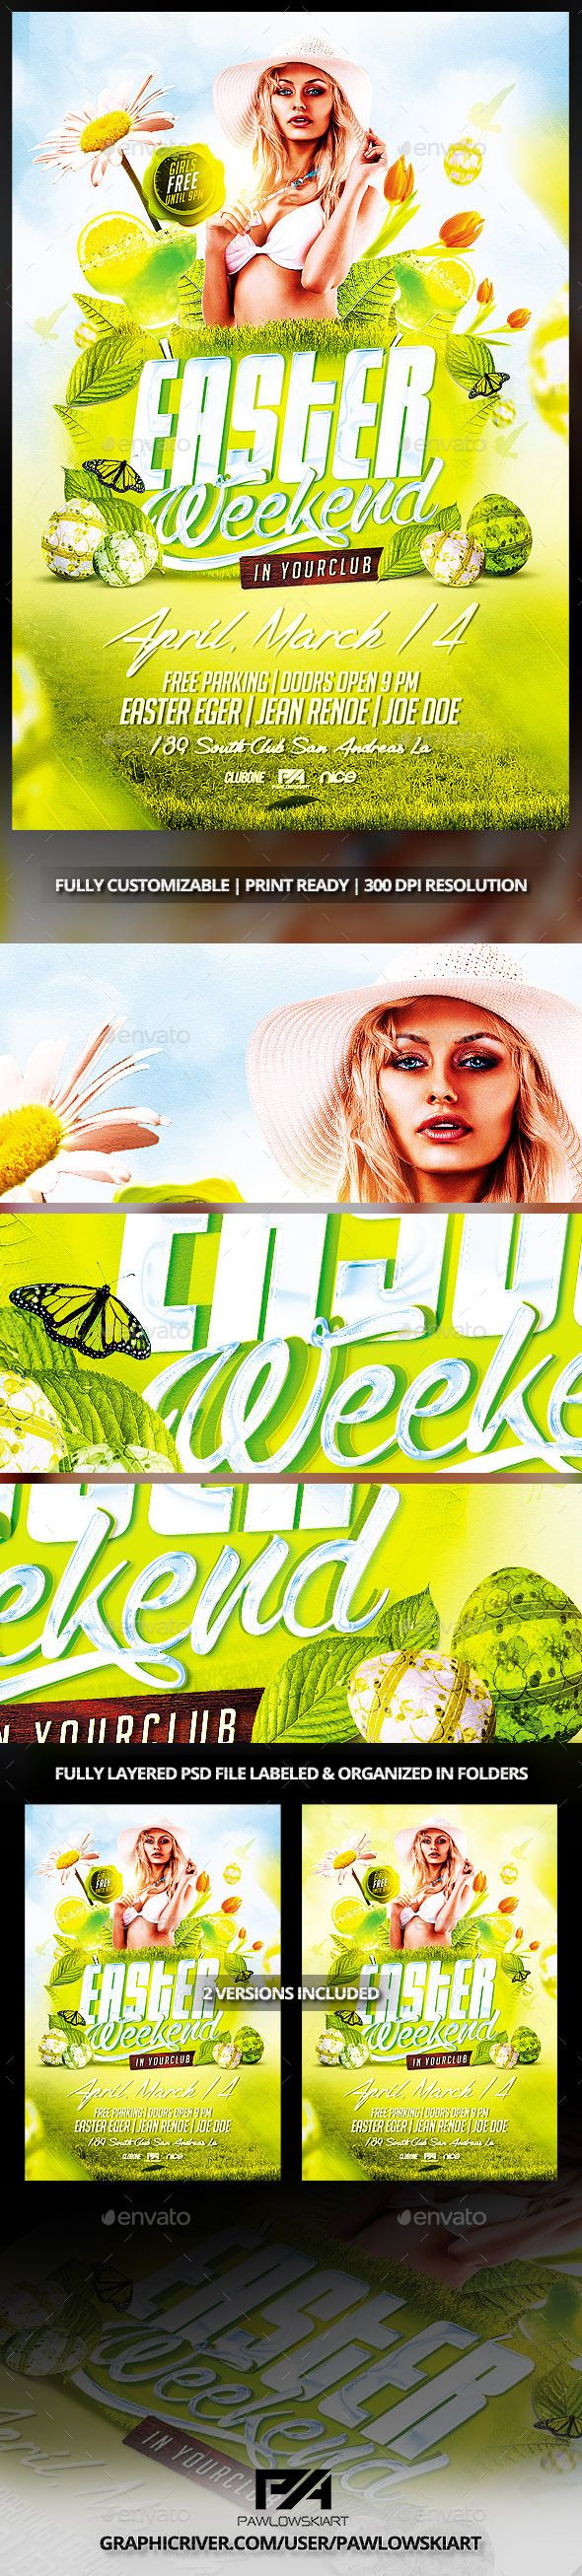 Easter Weekend Flyer Template - Events Flyers